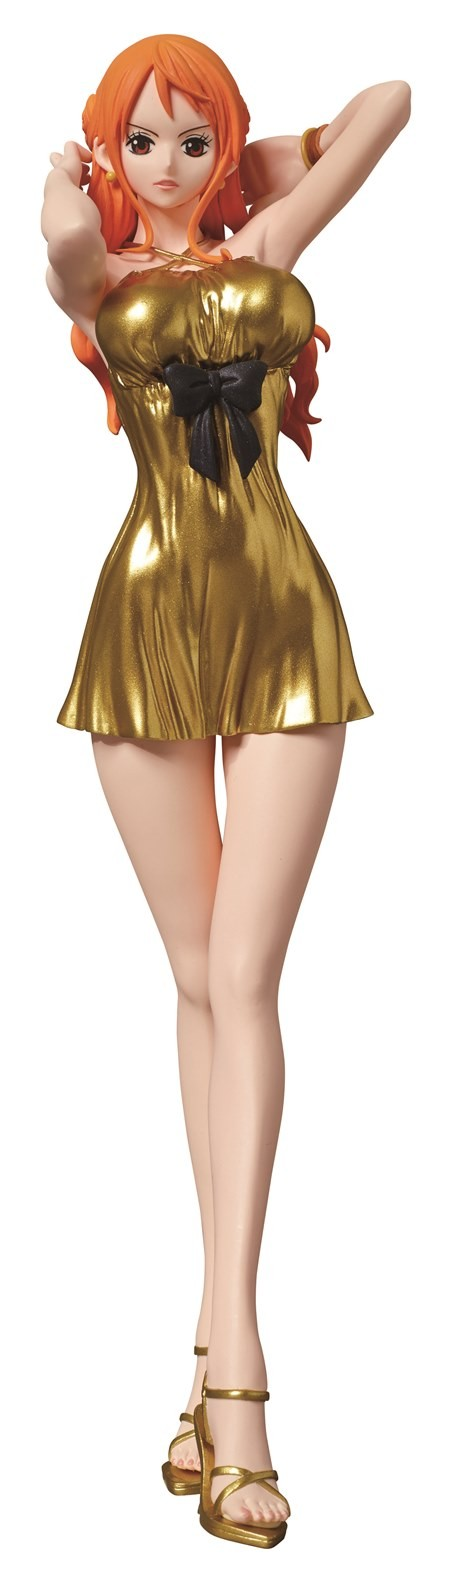 """One Piece Figure Film Gold """"Glitter & Glamours"""" Style Figure - Nami Gold version - 25 cm"""